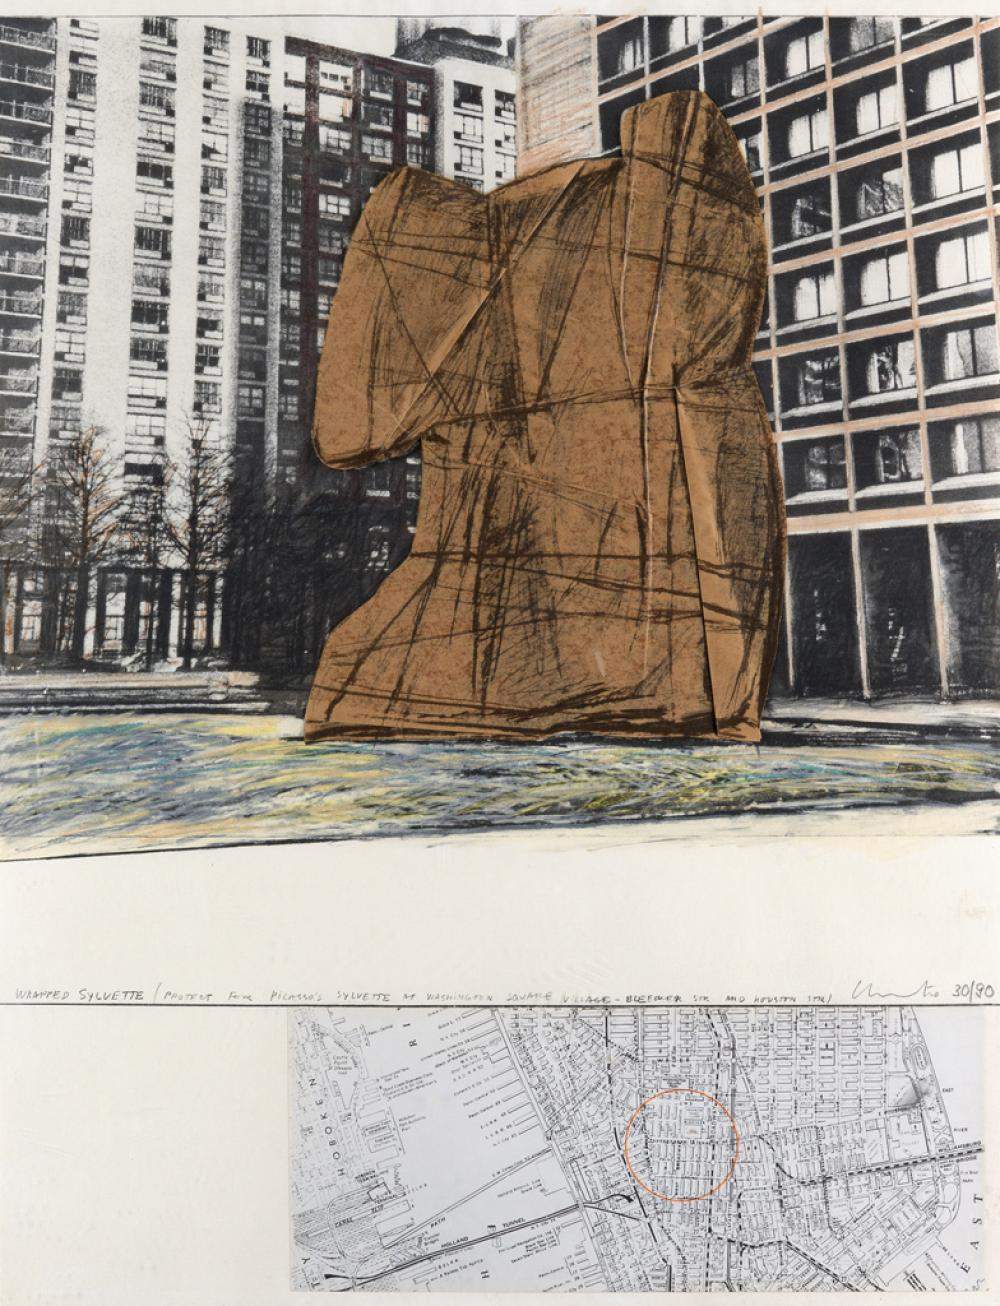 CHRISTO Wrapped Sylvette, Project for Washington Square Village, New York.